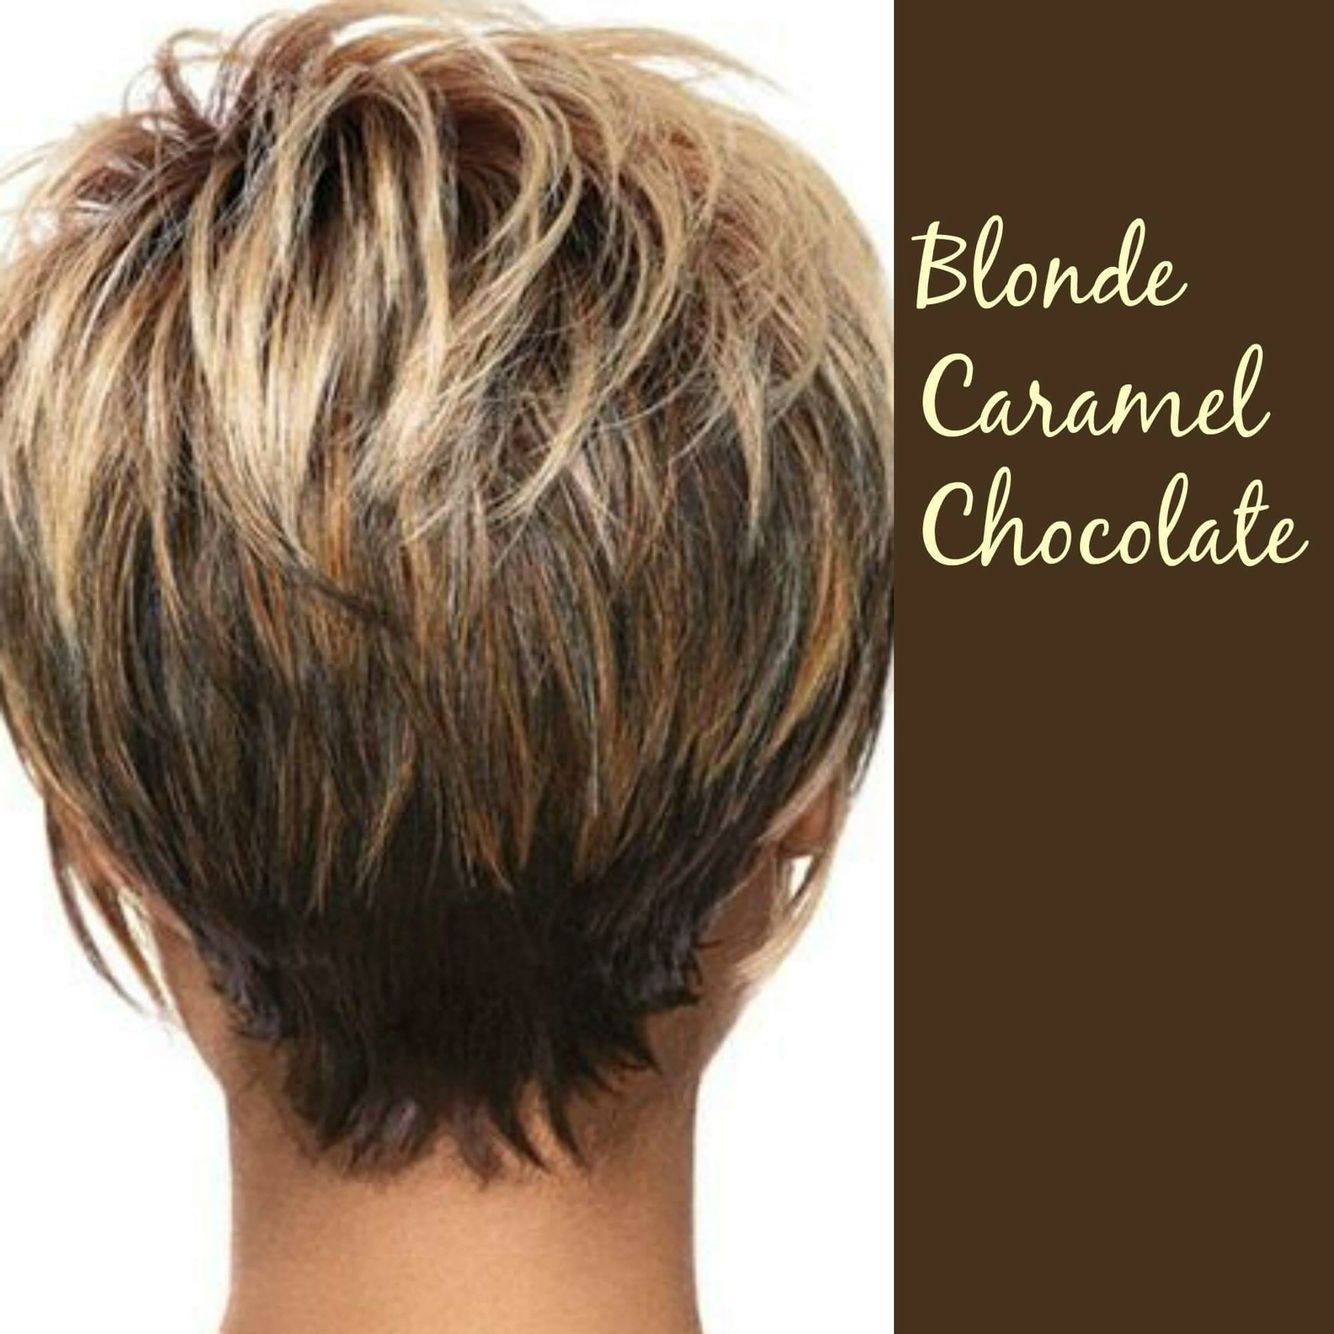 Gorgeous highlights and very chic cut hair styles pinterest